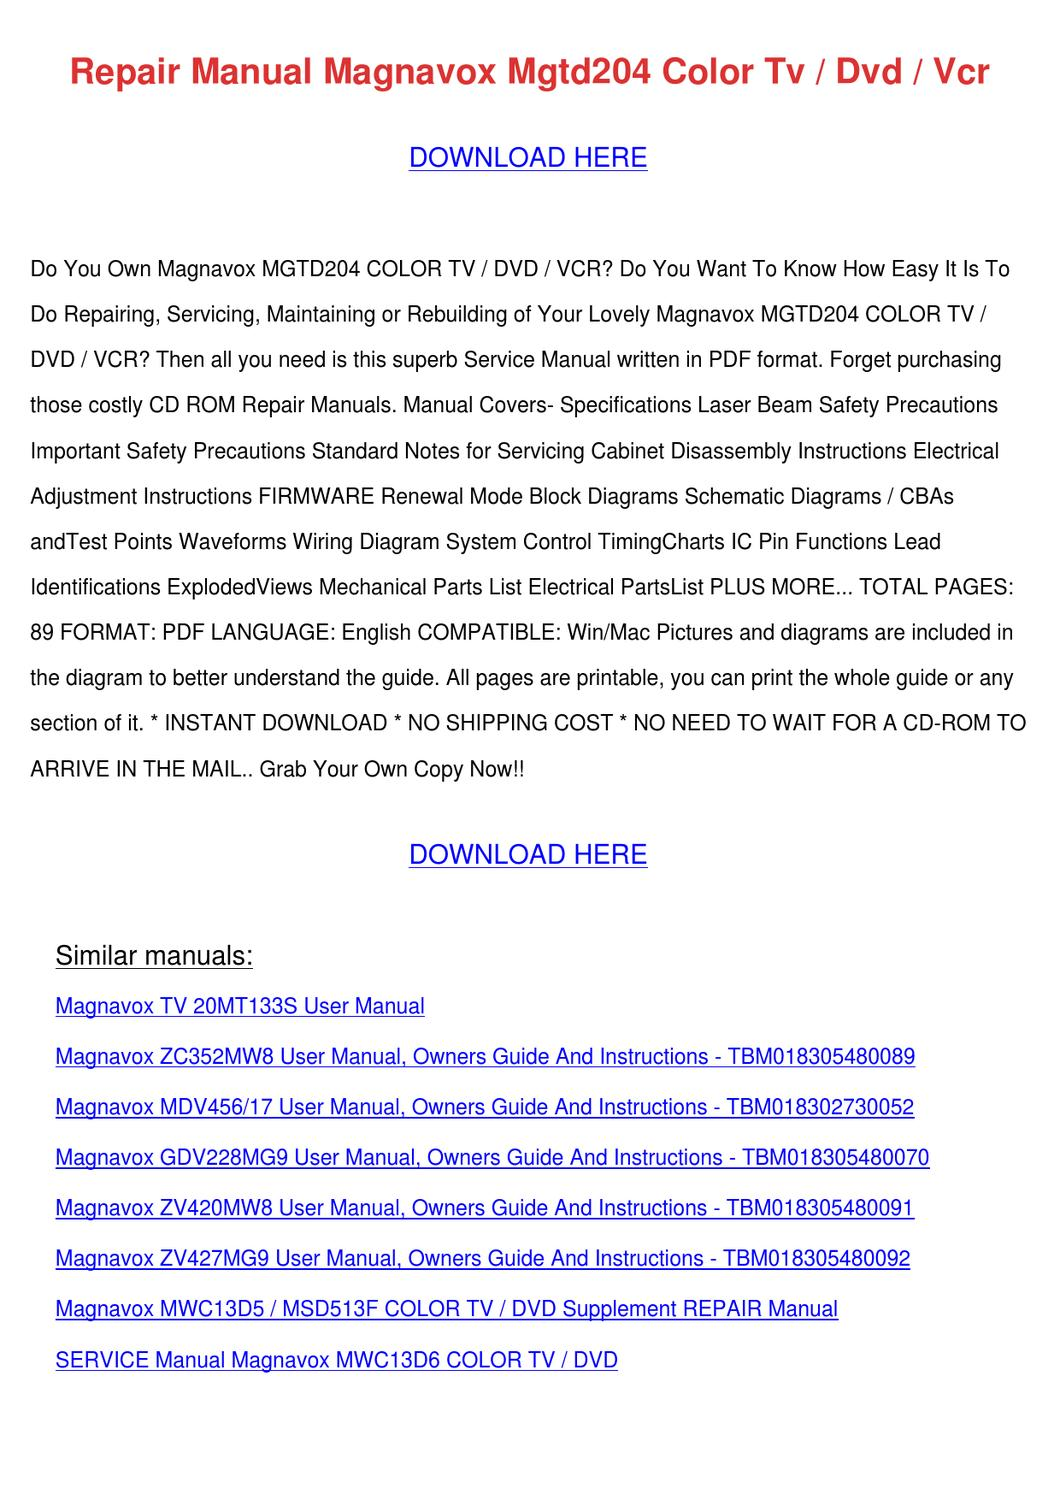 repair manual magnavox mgtd204 color tv dvd v by hermelindafrey issuu rh issuu com Toshiba DVD VCR Schematics VCR Schematic Diagram